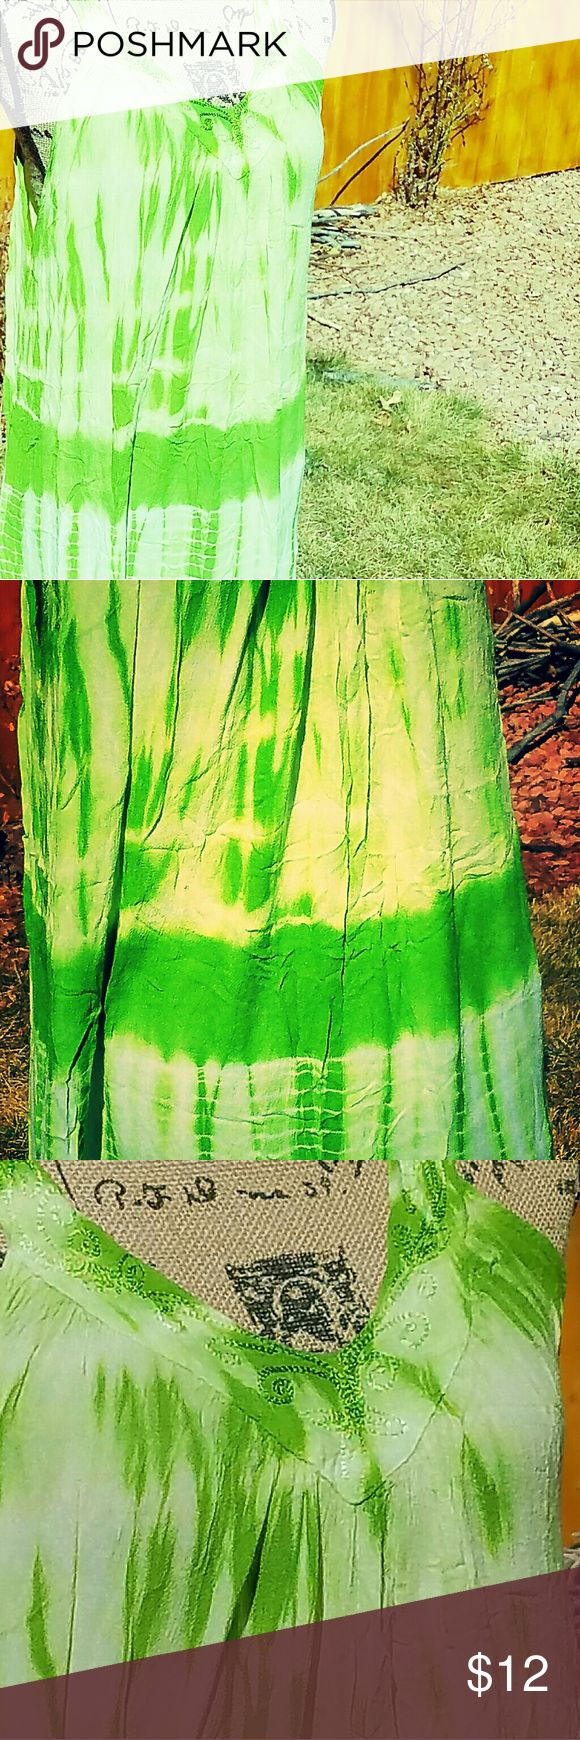 Green tunic tye dye! Pretty green embroidery trimming, sleeveless, can be worn as a dress or with leggings, super comfy, excellent condition Dresses Midi